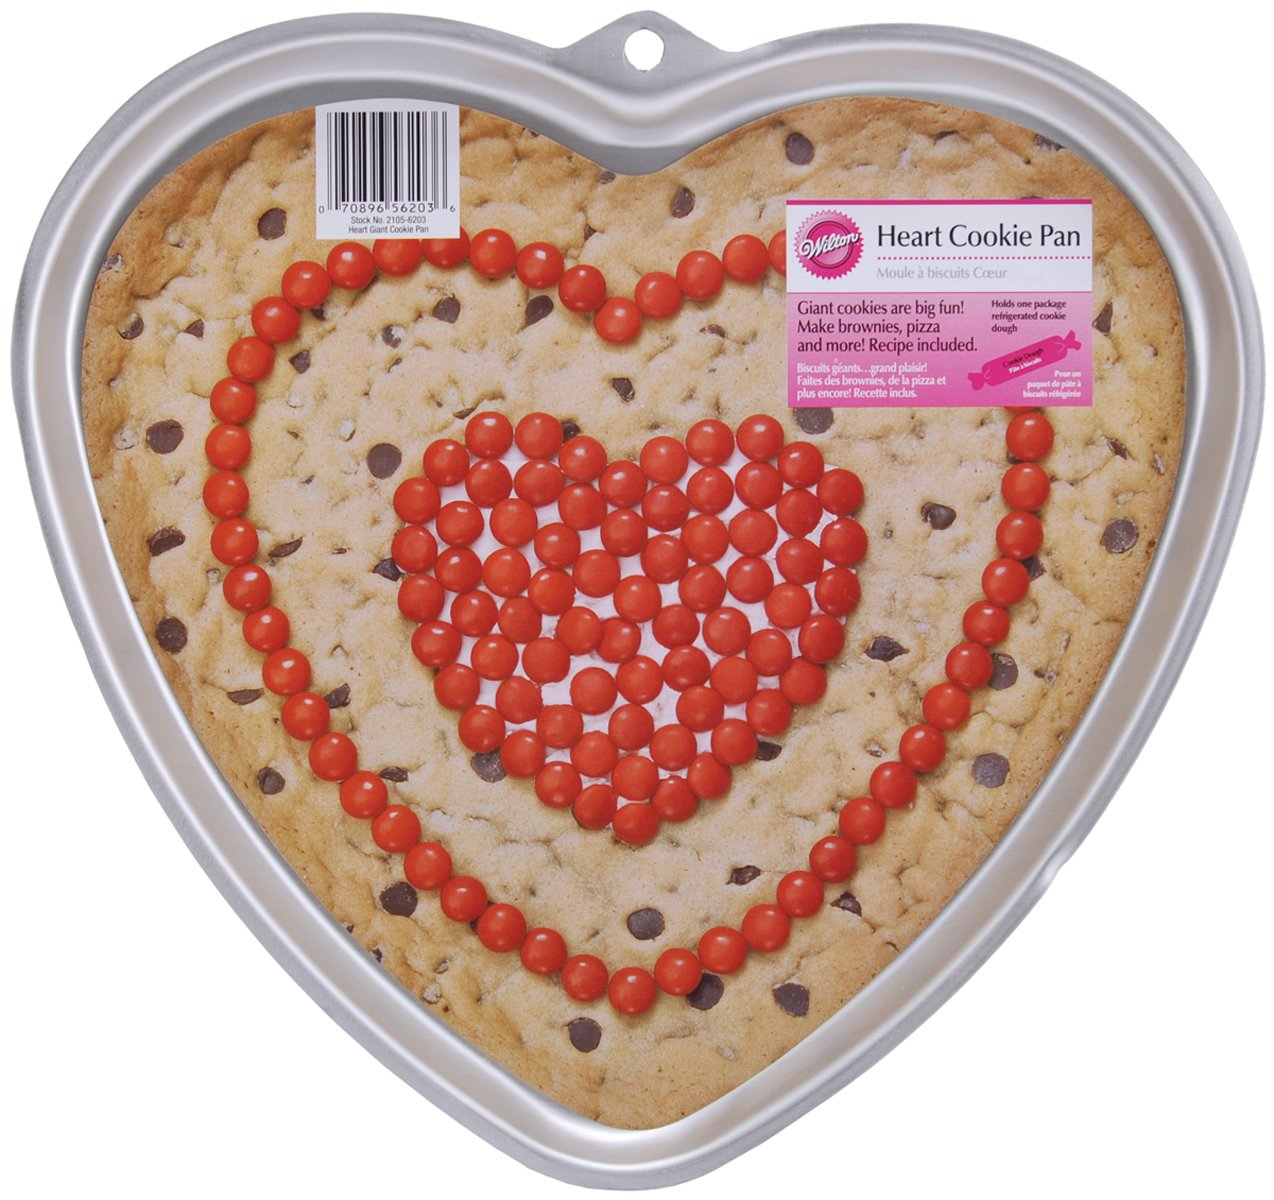 Wilton Heart Giant Cookie Pan 2105-6203